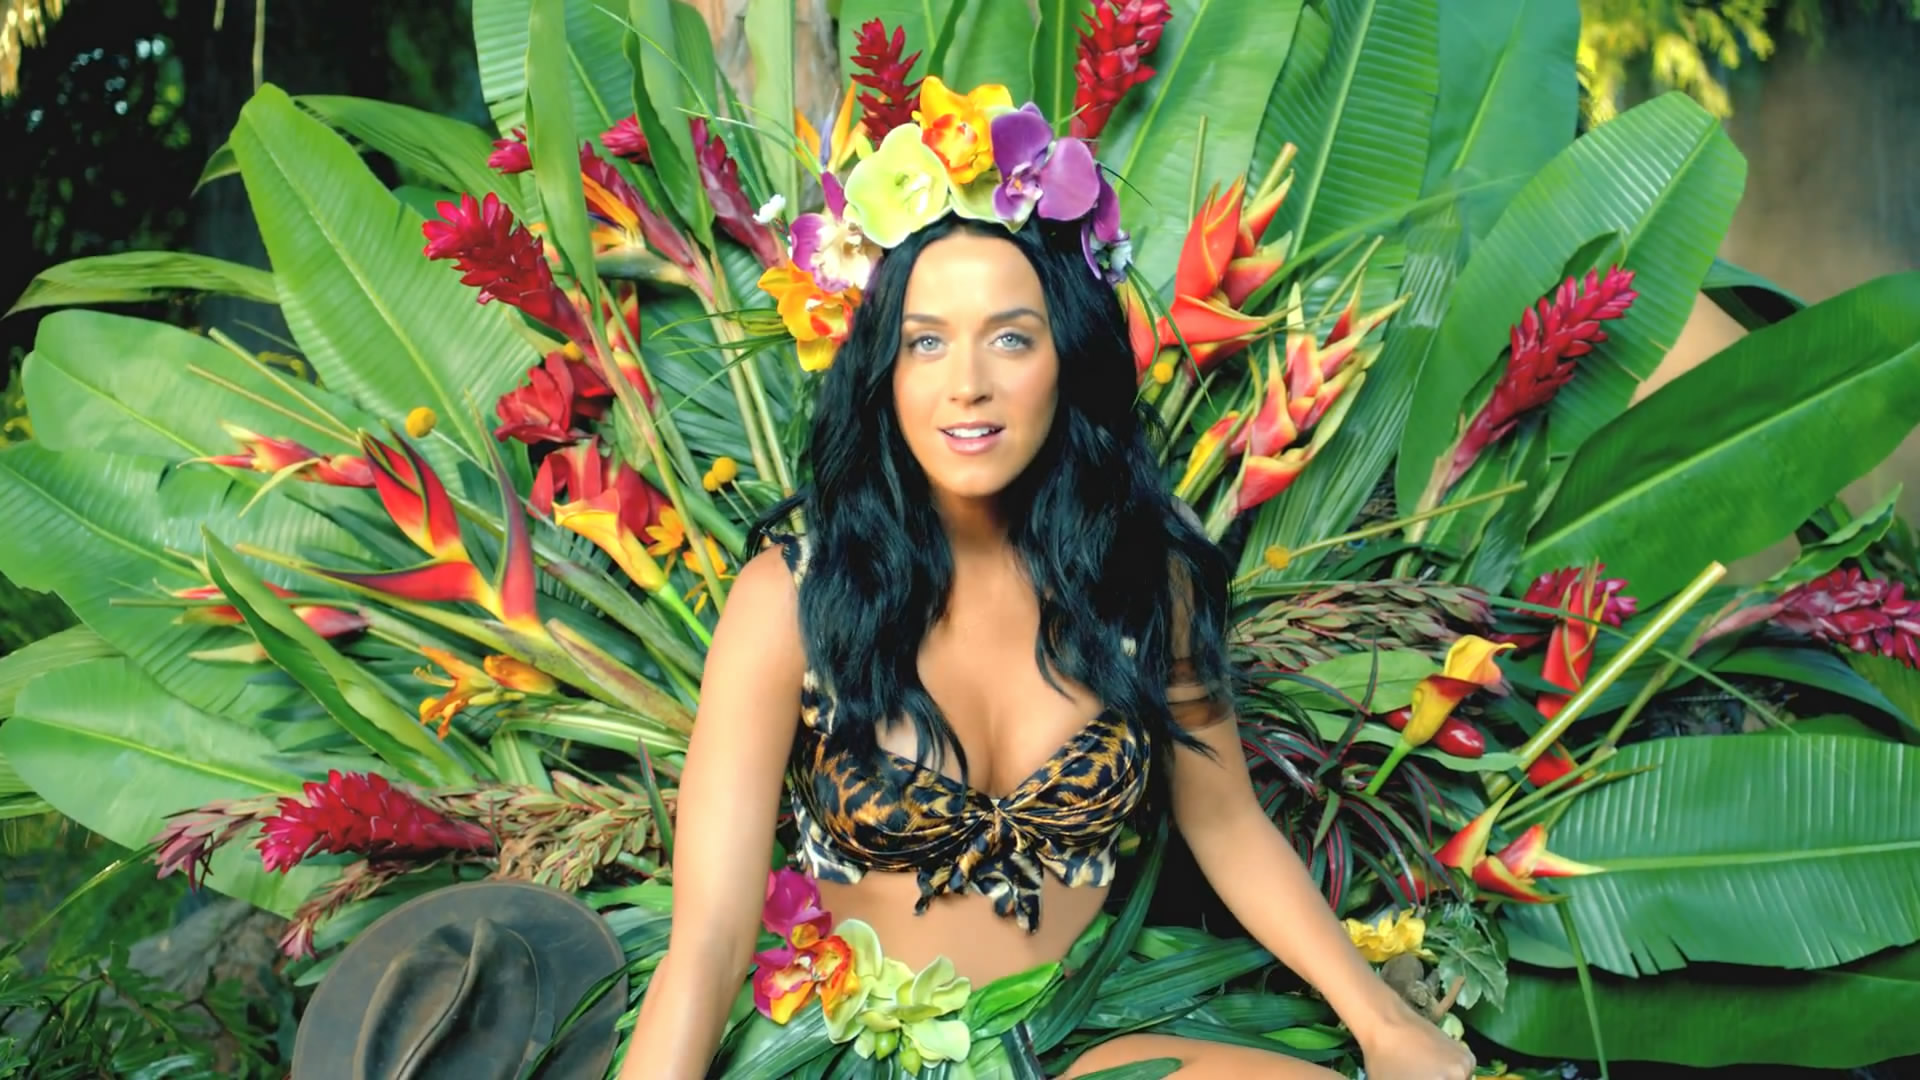 Katy Perry Roar Music Video HD -30 - GotCeleb